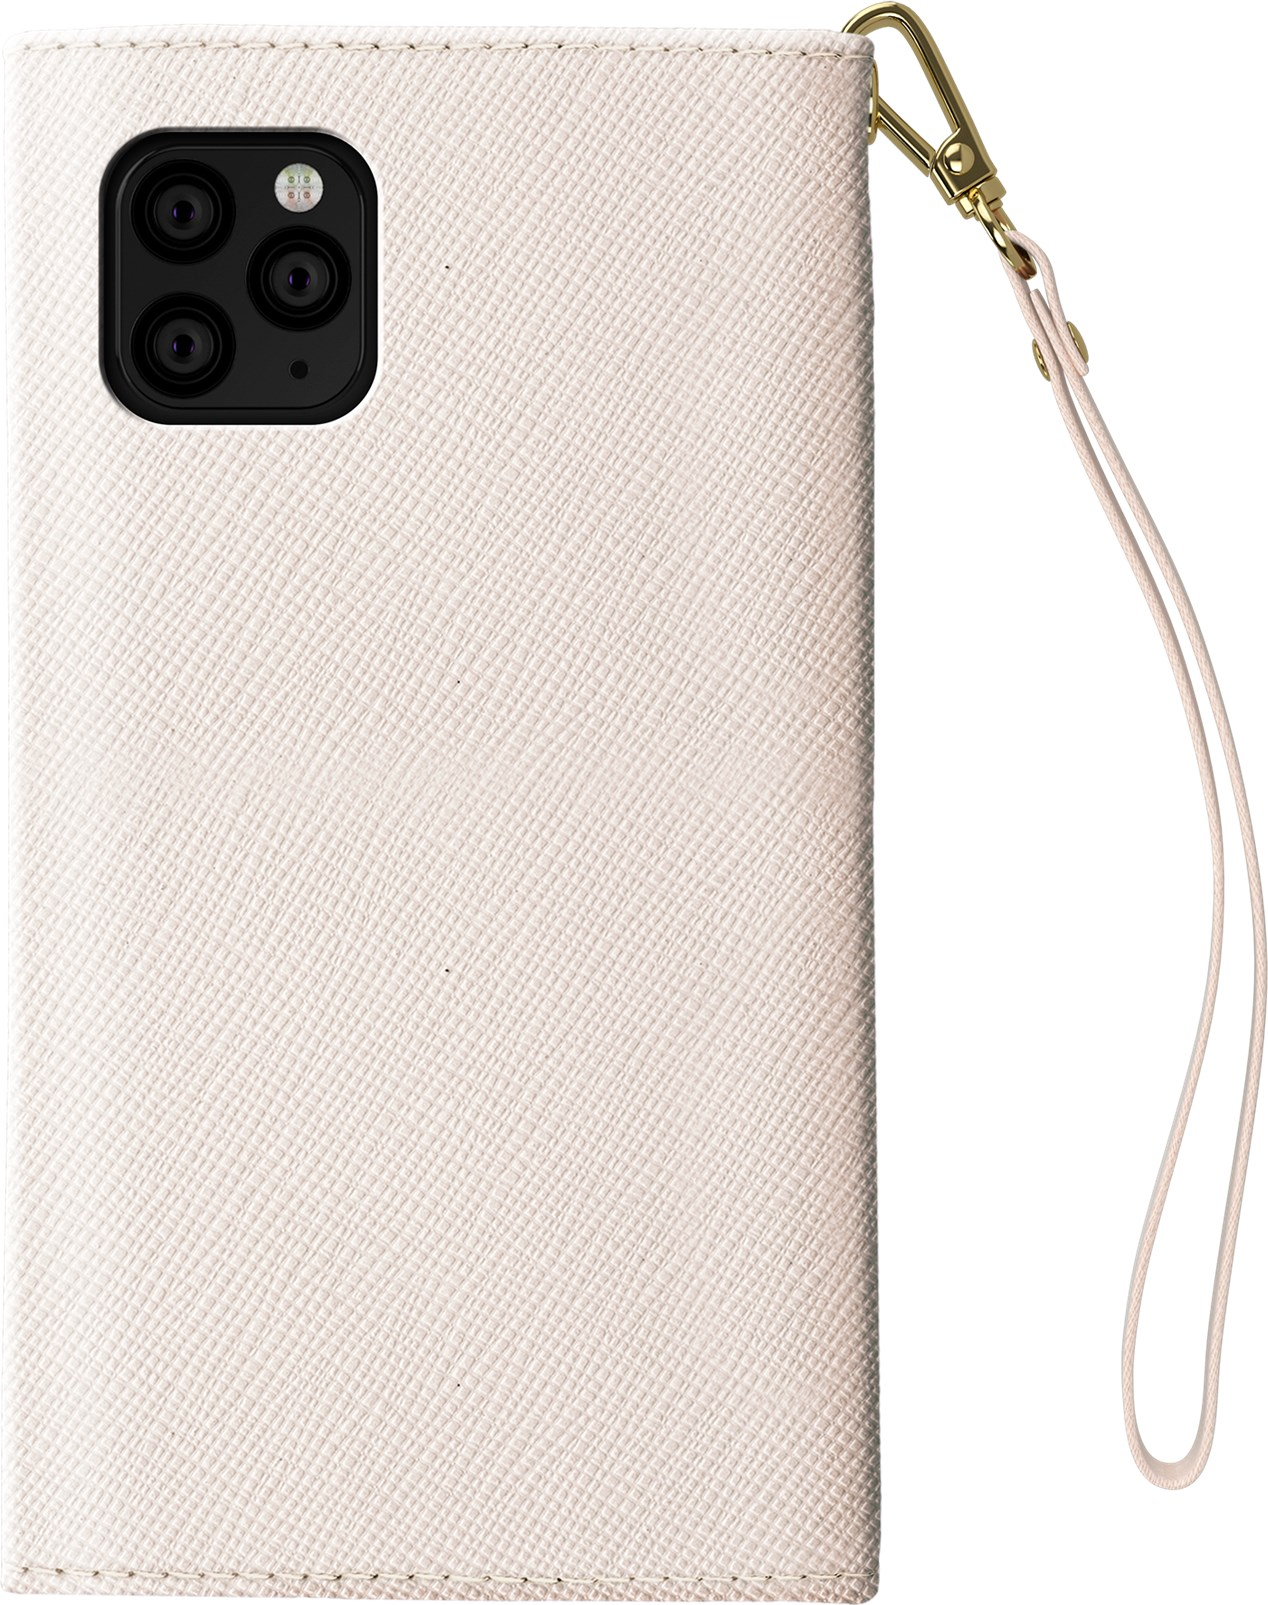 iDeal of Sweden Ideal Mayfair Clutch Iphone 11 Pro Max Beige